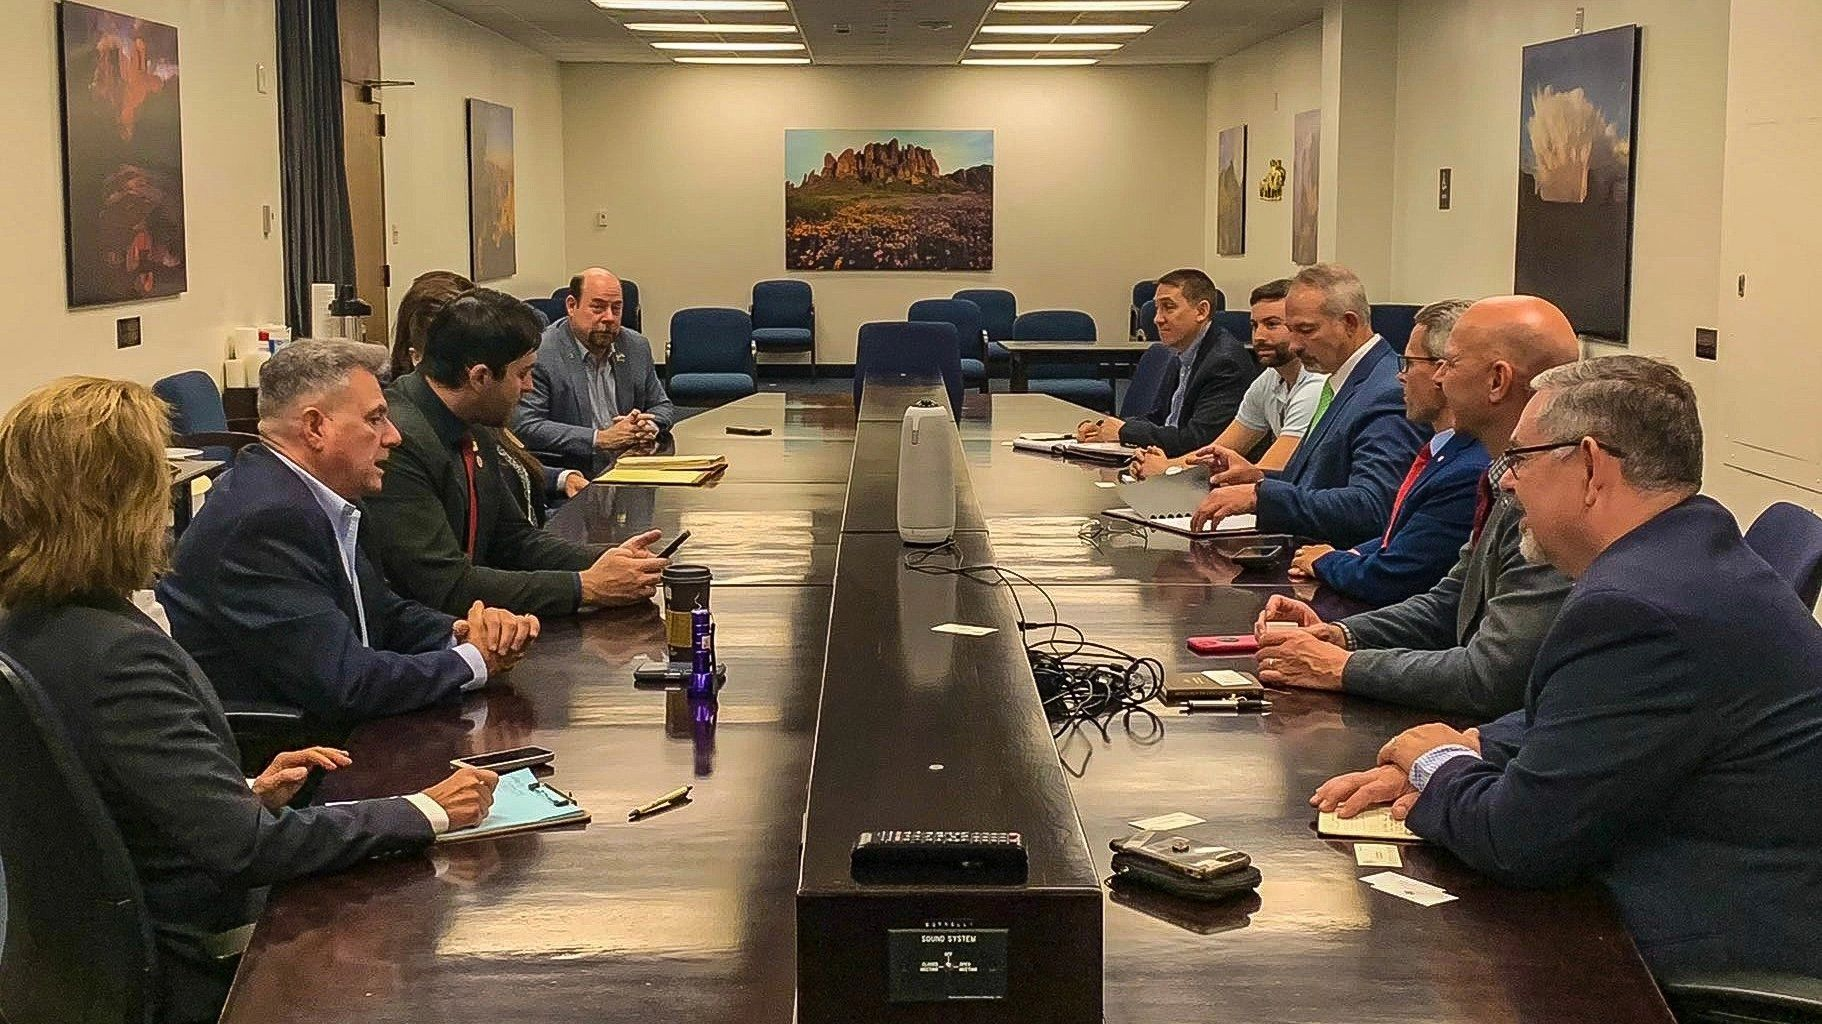 Legislative delegation from the Palestinian Authority sits with Arizona lawmakers